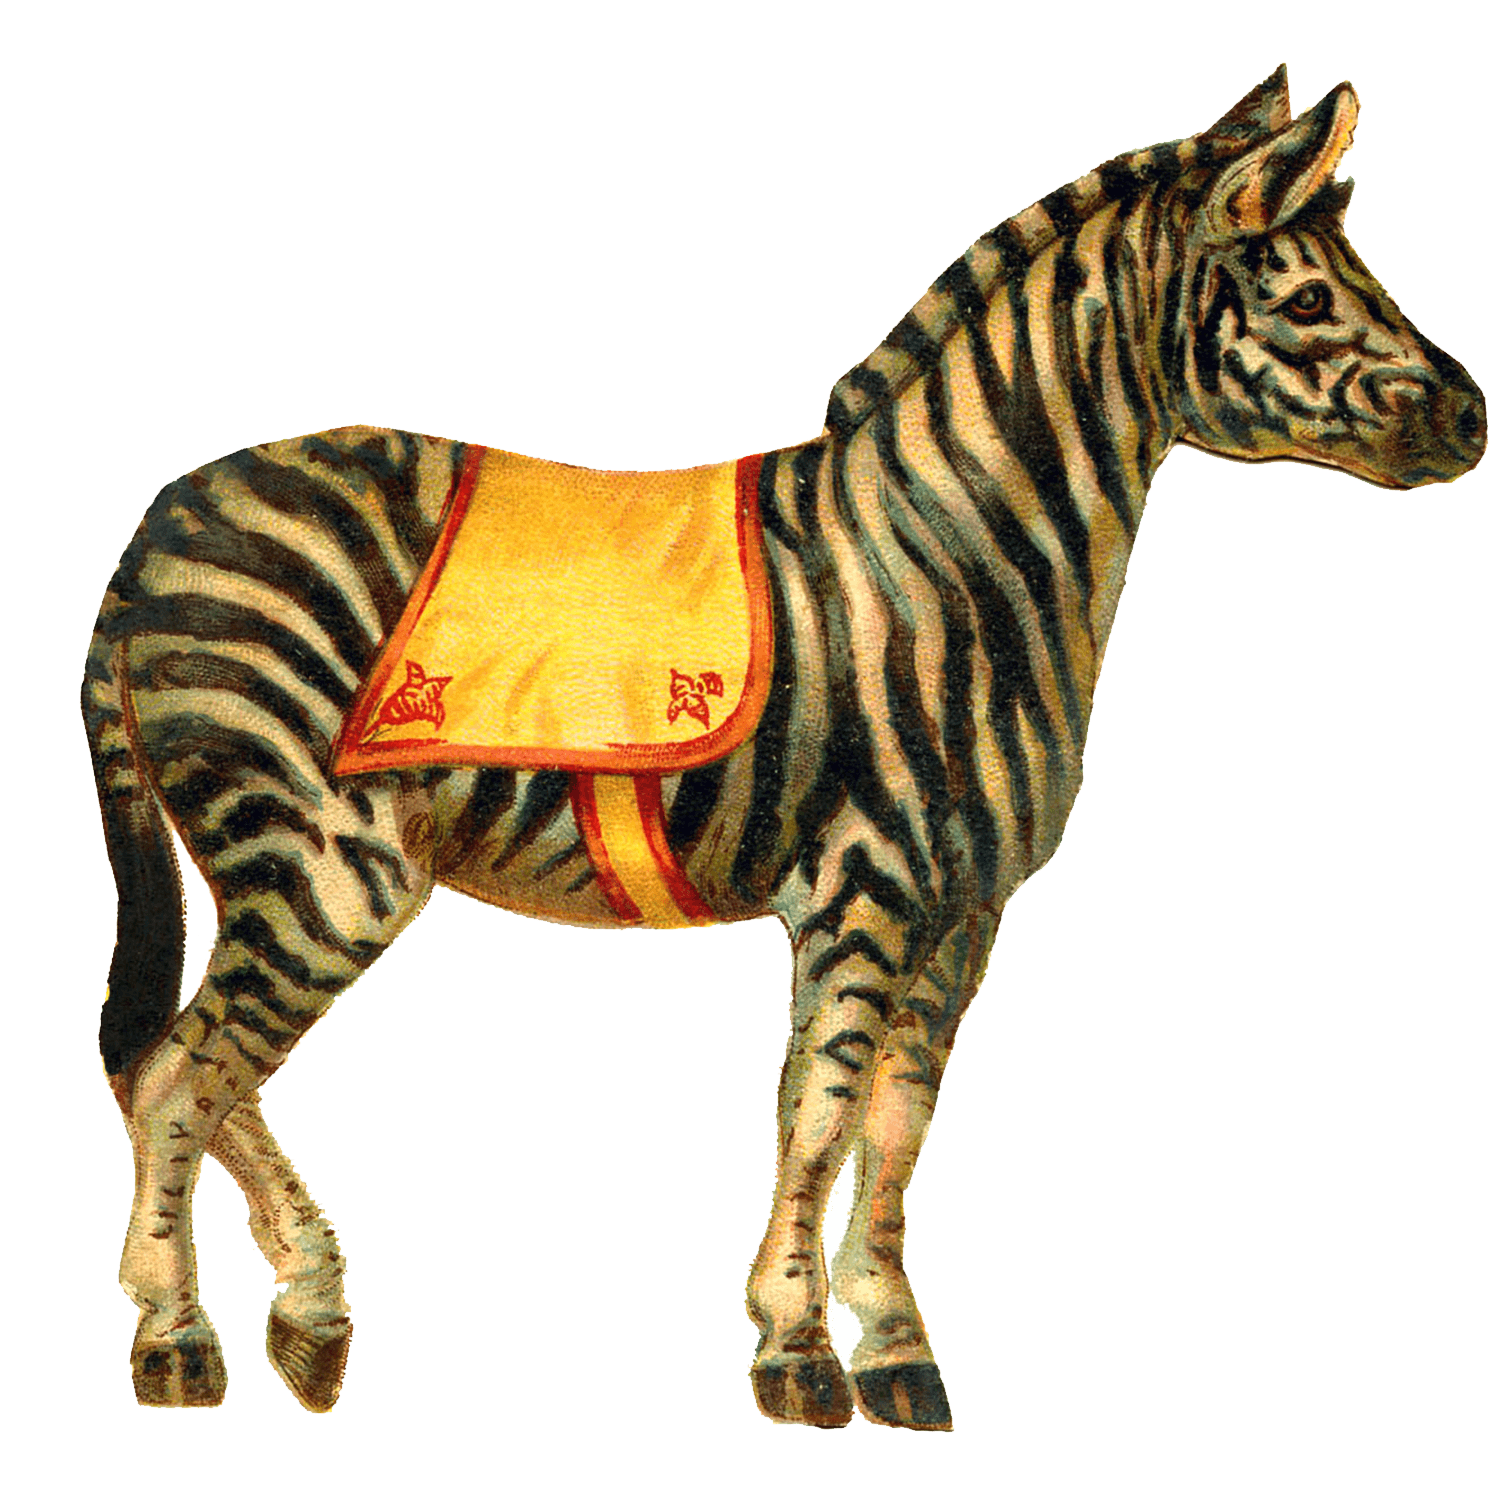 http://www.stickpng.com/assets/images/580b57fbd9996e24bc43bd03.png Circus Animals Png